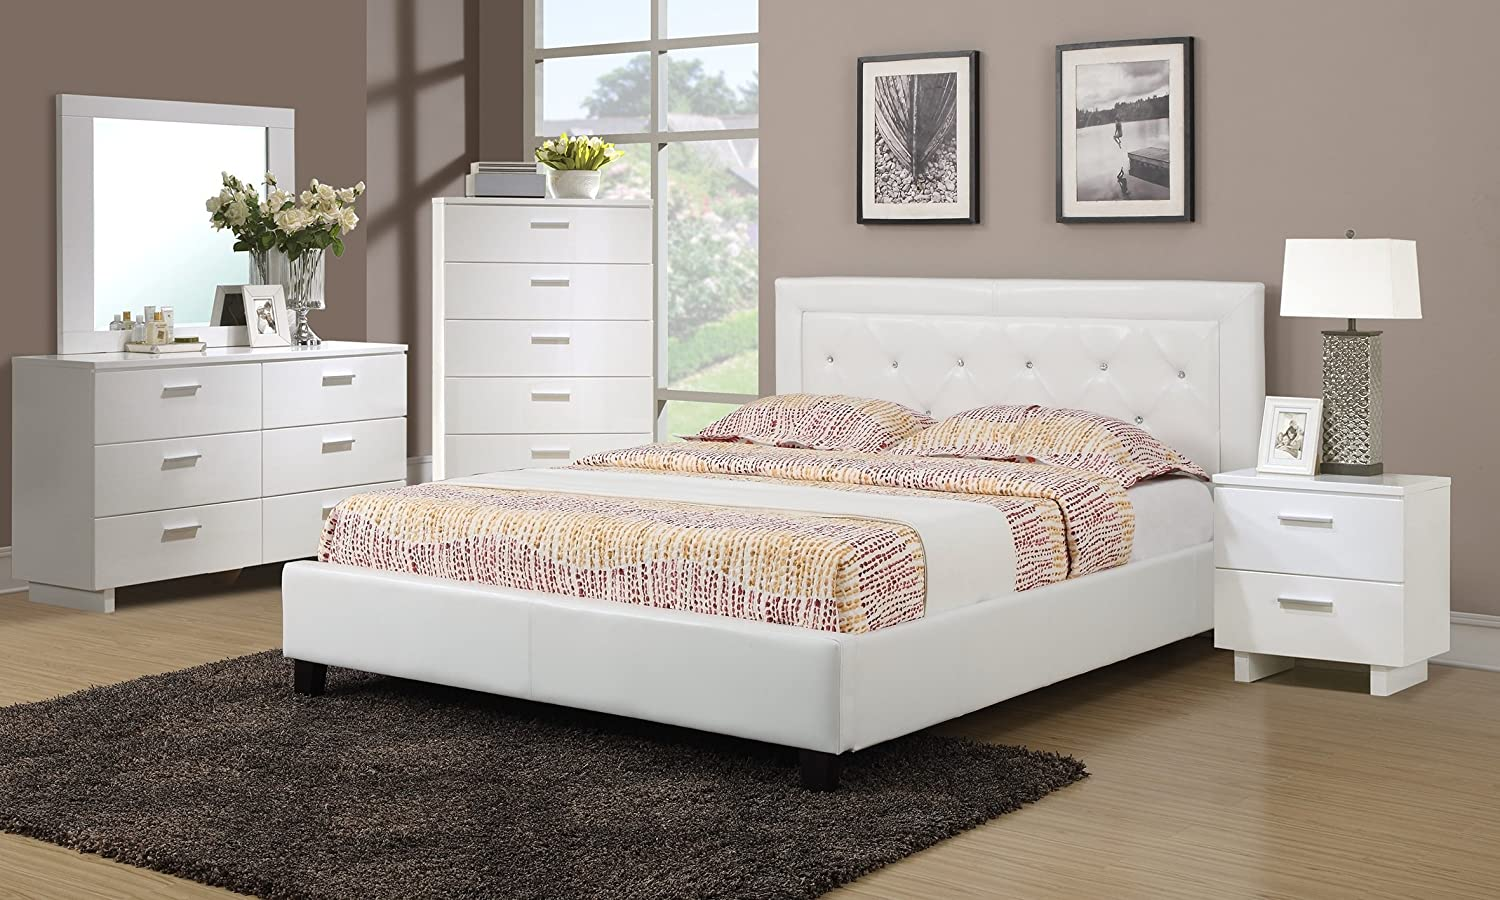 Amazon com white faux leather solid pine 4pc bedroom furniture set queen size tufted bed matching dresser mirror nightstand kitchen dining